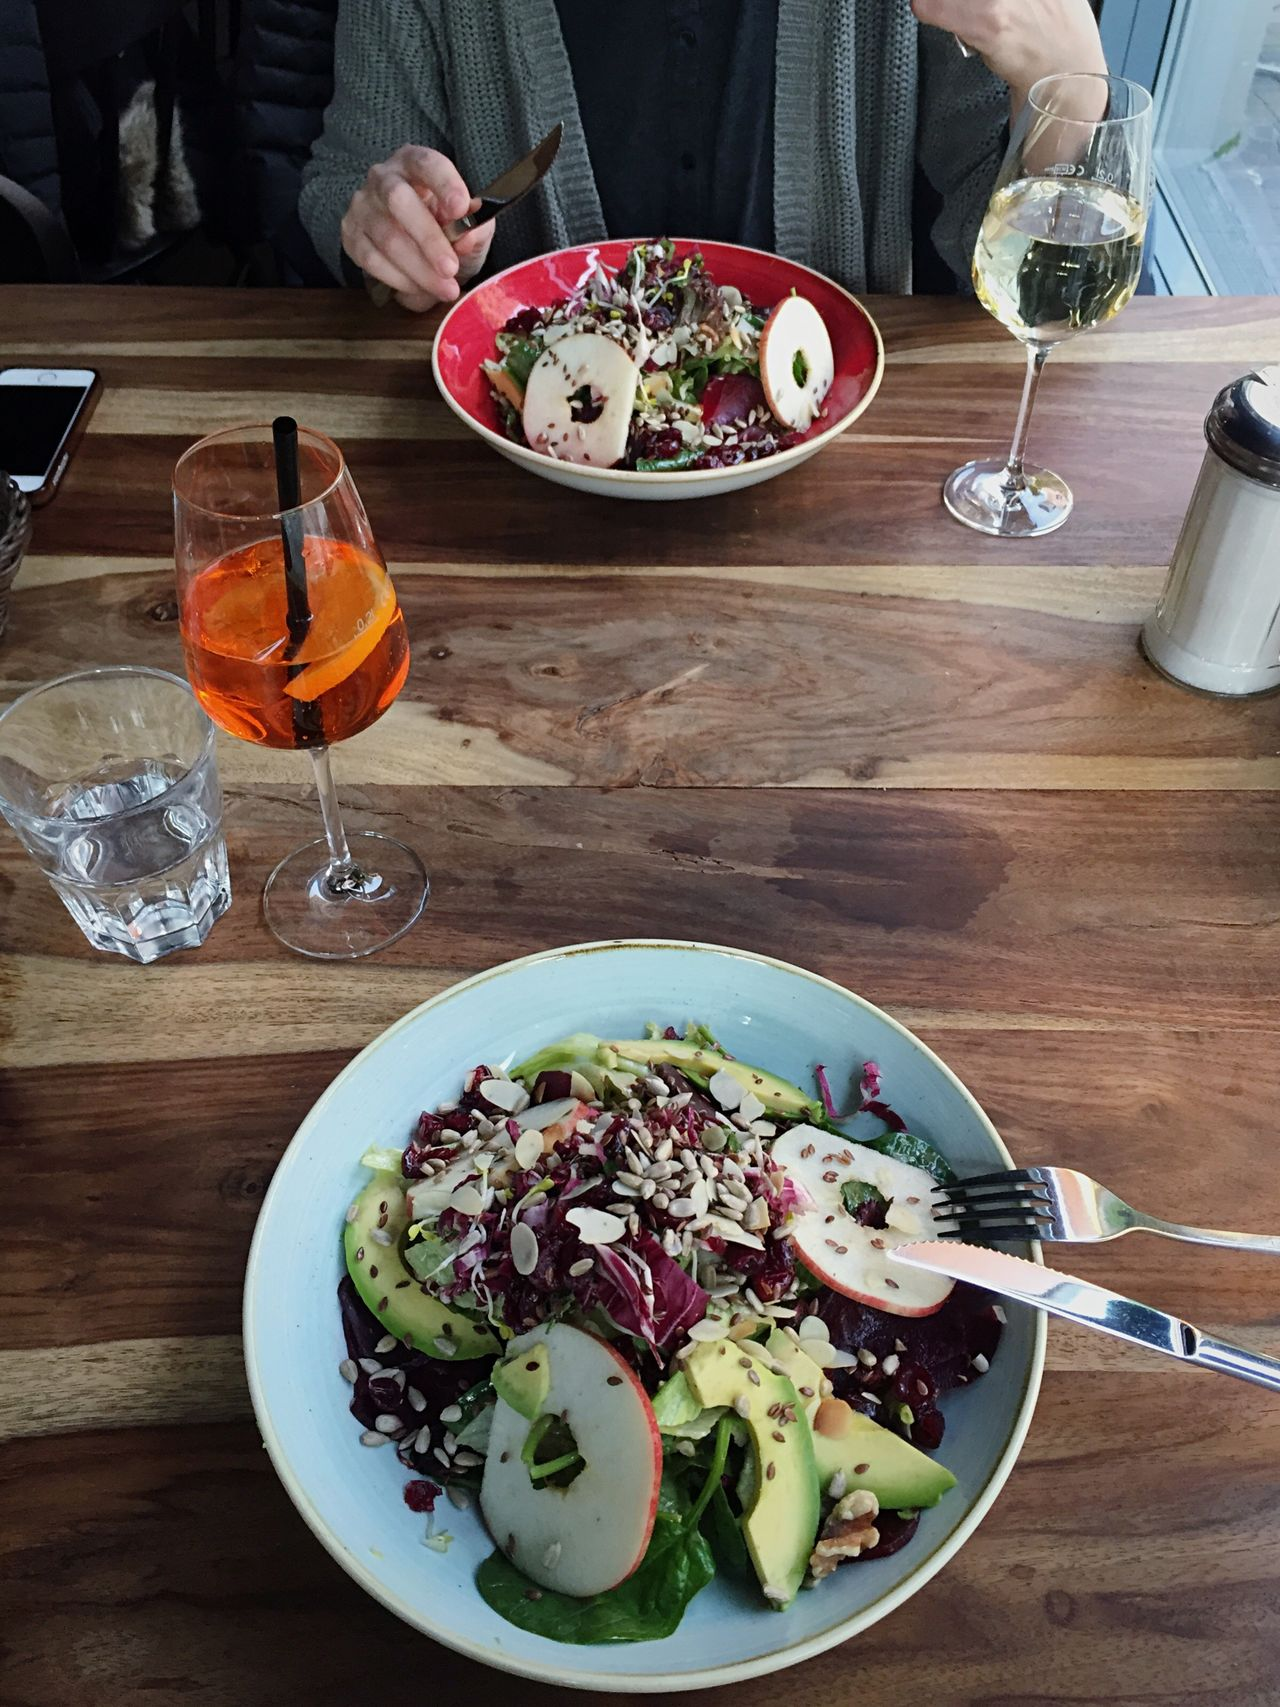 Dinner with a friend. After work drinks Table Plate Food And Drink Salad Freshness Healthy Eating High Angle View Bowl Drinking Glass Healthy Lifestyle Fork Indoors  Ready-to-eat Refreshment Food Vegetable Serving Size Salad Bowl Drink Lettuce Vegan Vegetarian Food Healthy Berlin Restaurant